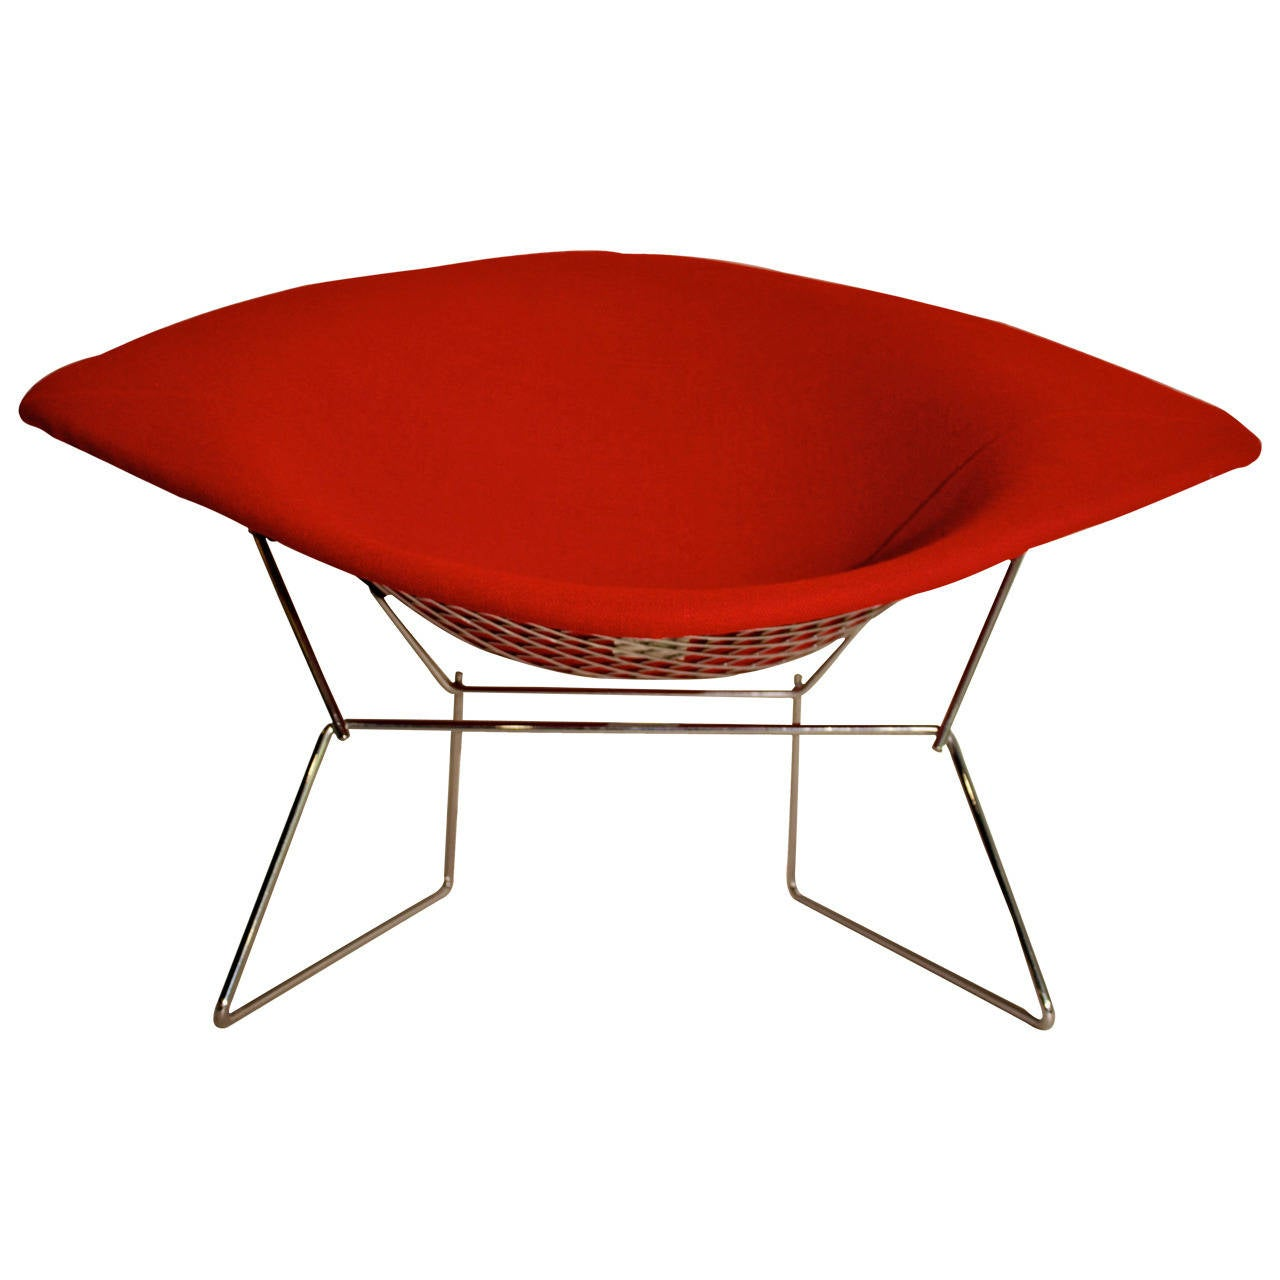 the diamond chair by harry bertoia at 1stdibs. Black Bedroom Furniture Sets. Home Design Ideas